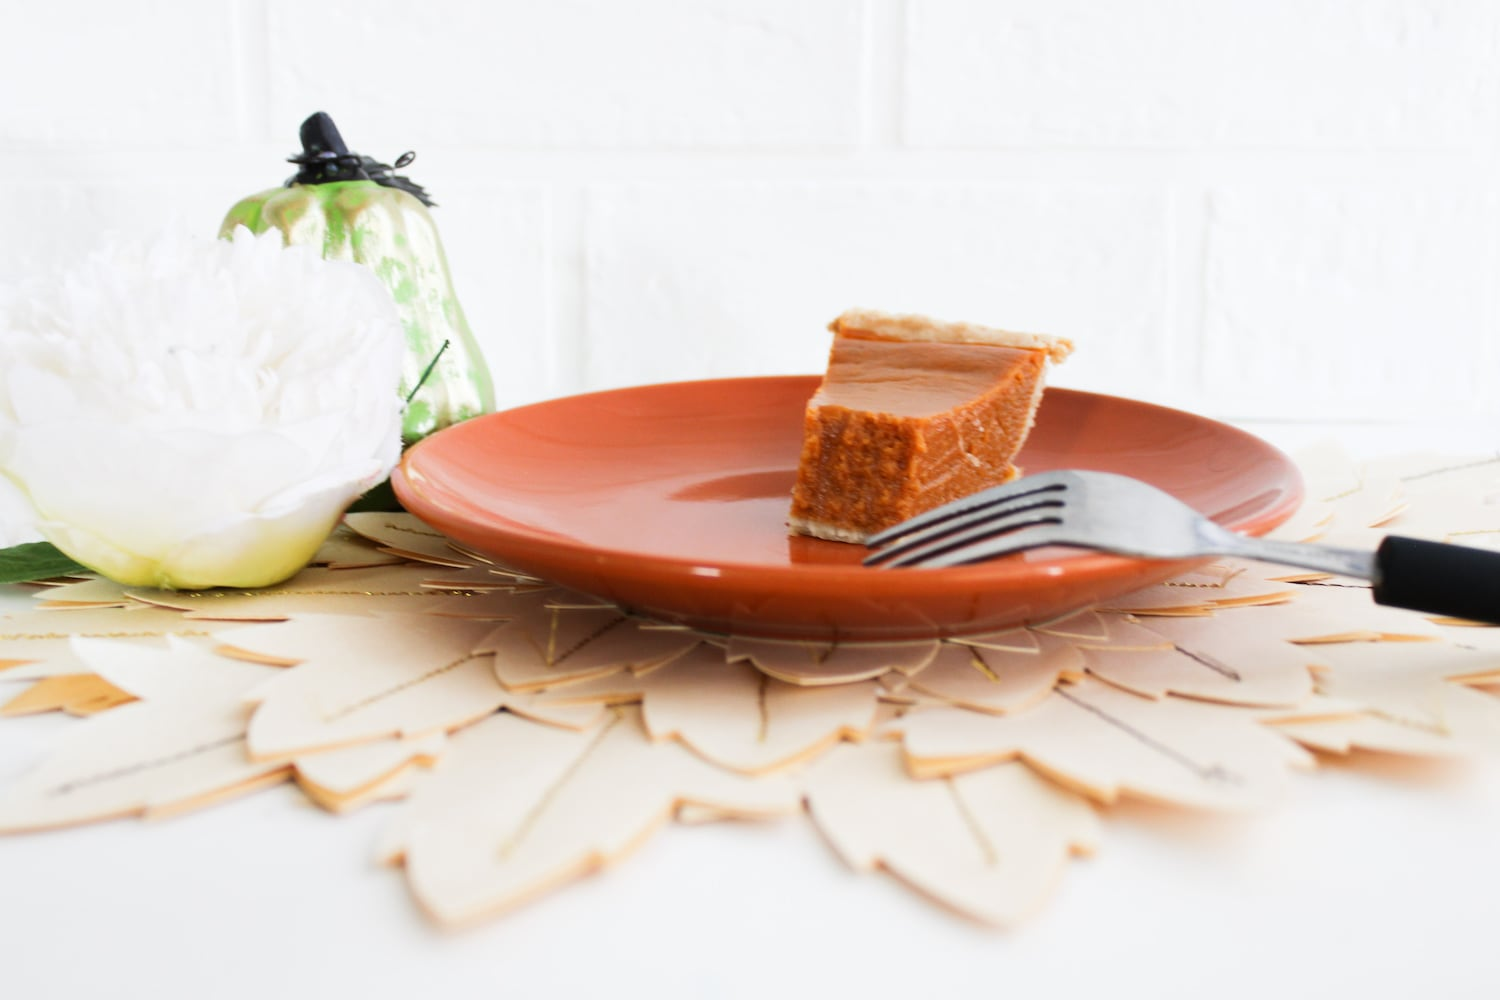 Fall leaf placemat with a slice of pumpkin pie